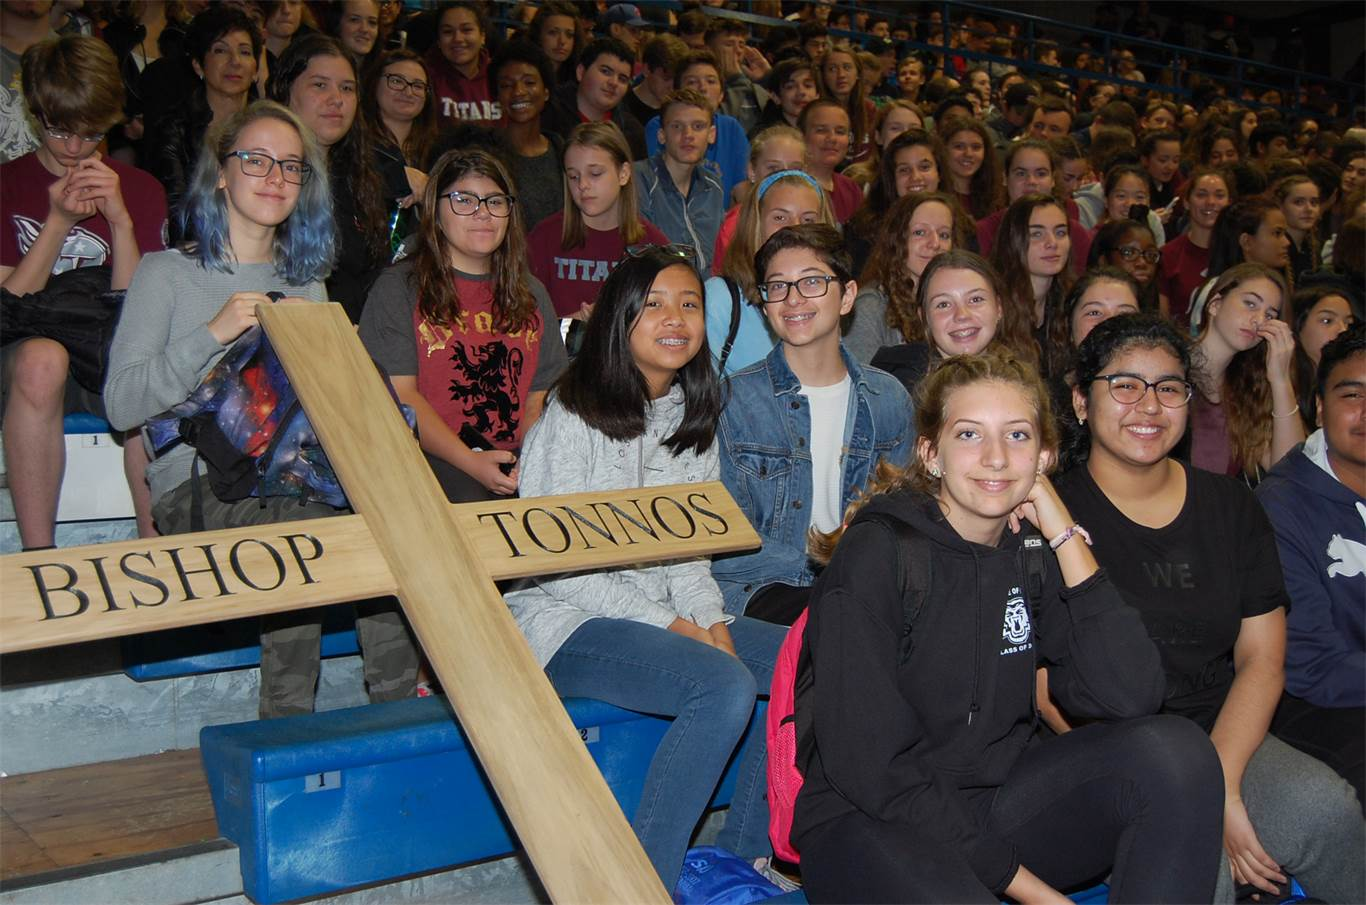 Students from Bishop Tonnos Catholic Secondary School attend a Eucharistic Celebration at Cathedral High School on Oct. 15. Close to 3,000 students and staff take part in the annual